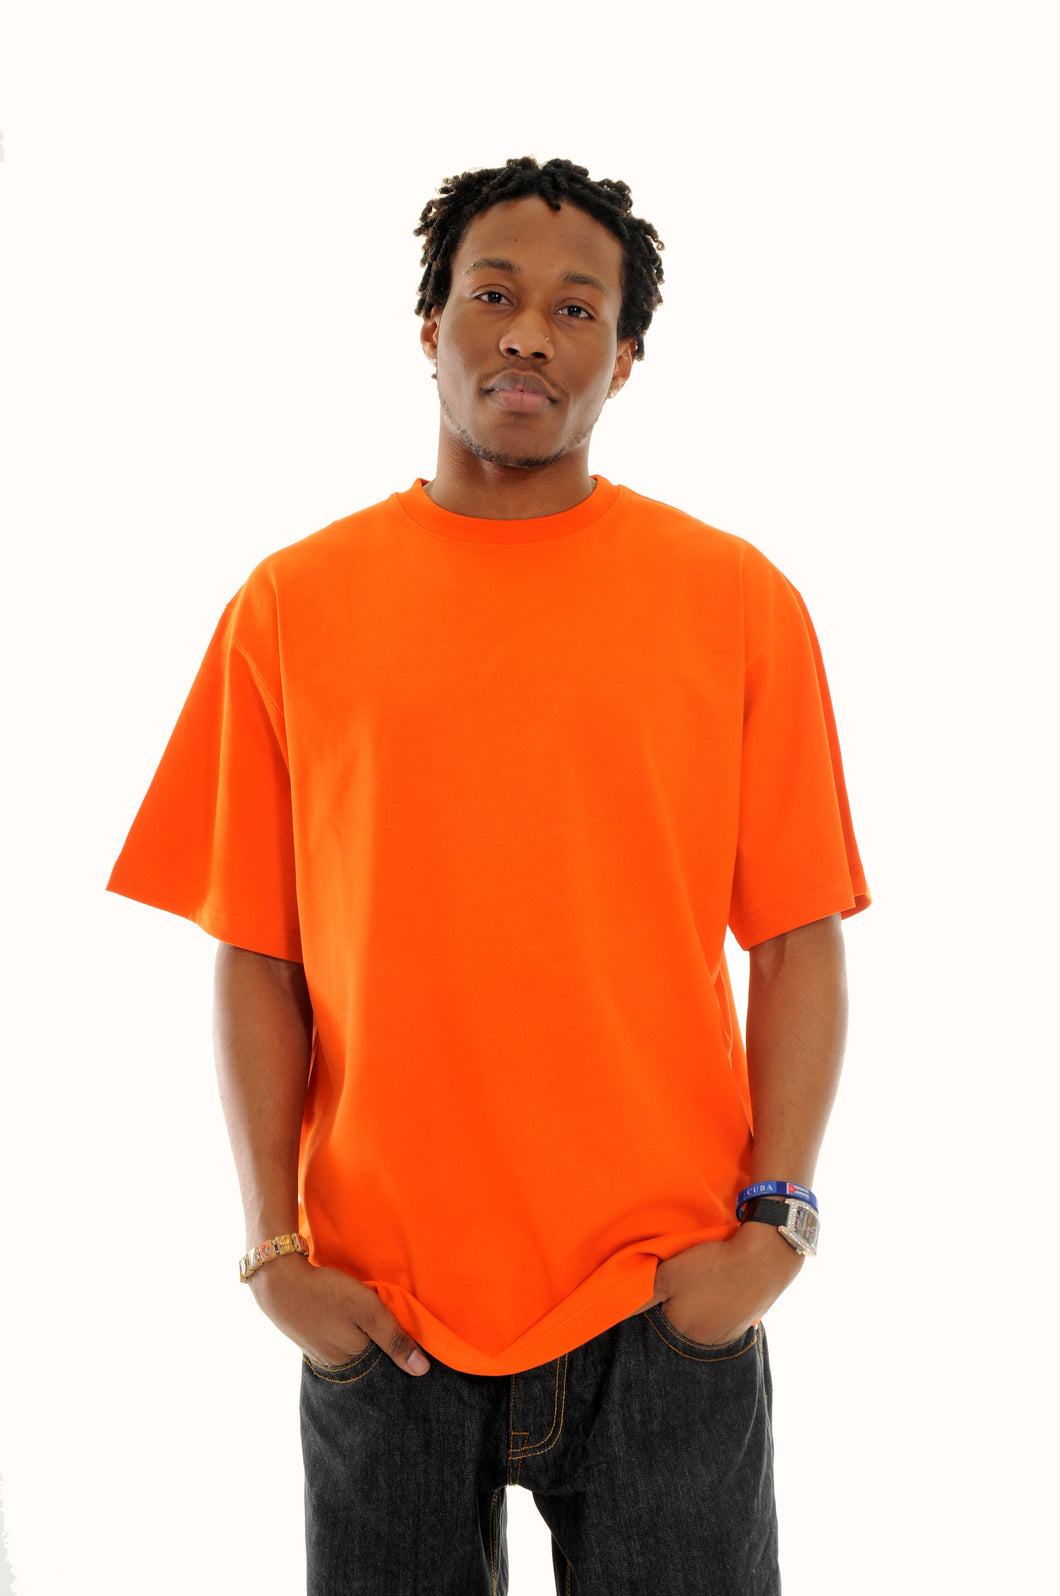 exetees Big and Tall Round Neck comfort T-Shirts-Orange